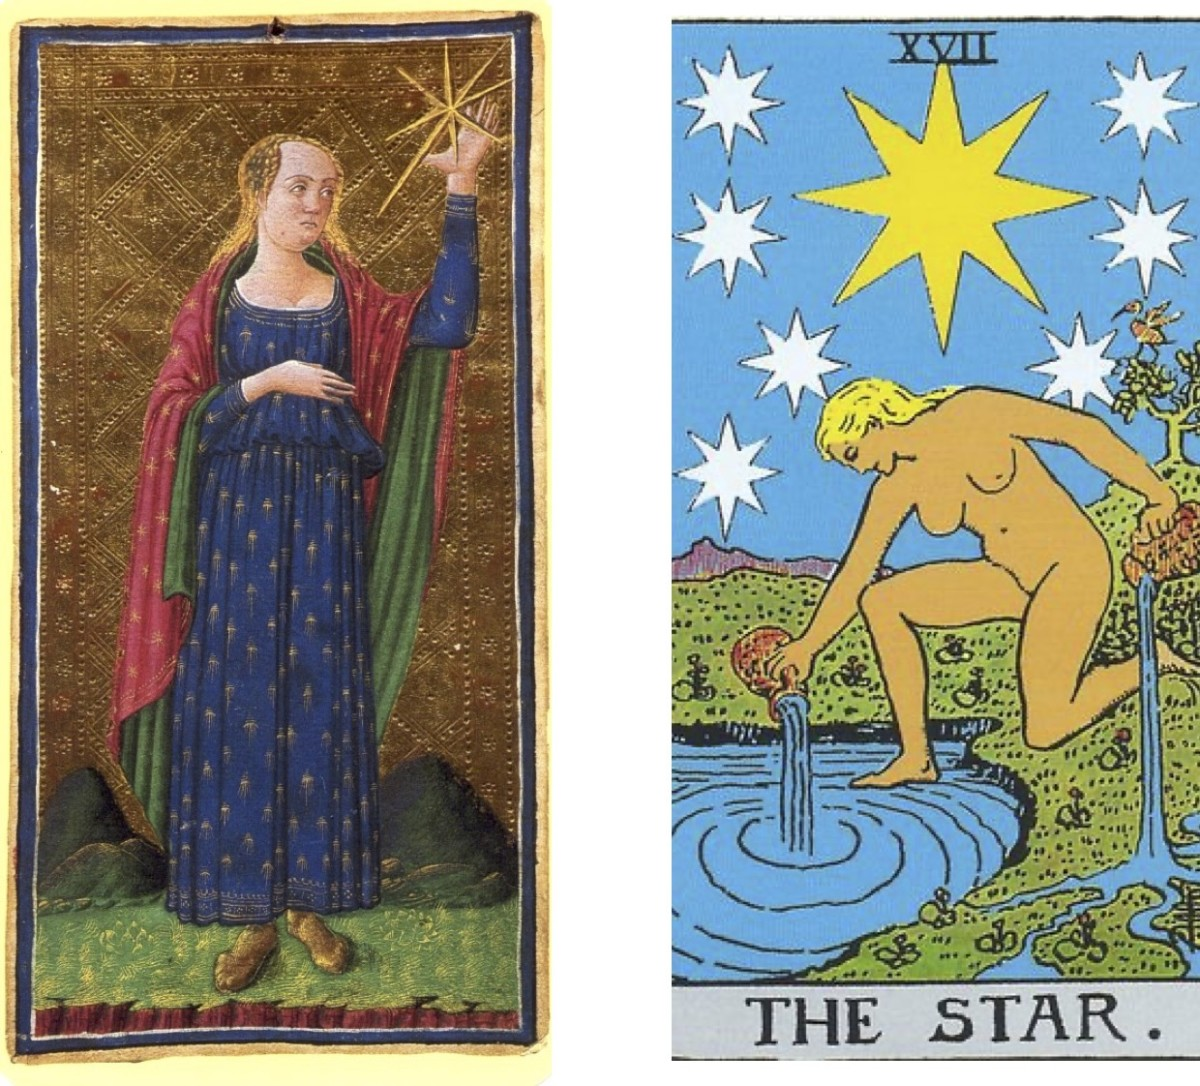 """This Star card means material and spiritual success; the """"balanced life"""" ideal. Does it come on a silver platter? No. Note that both images (15th and 20th century versions) have mountains in the background, representing challenges overcome."""